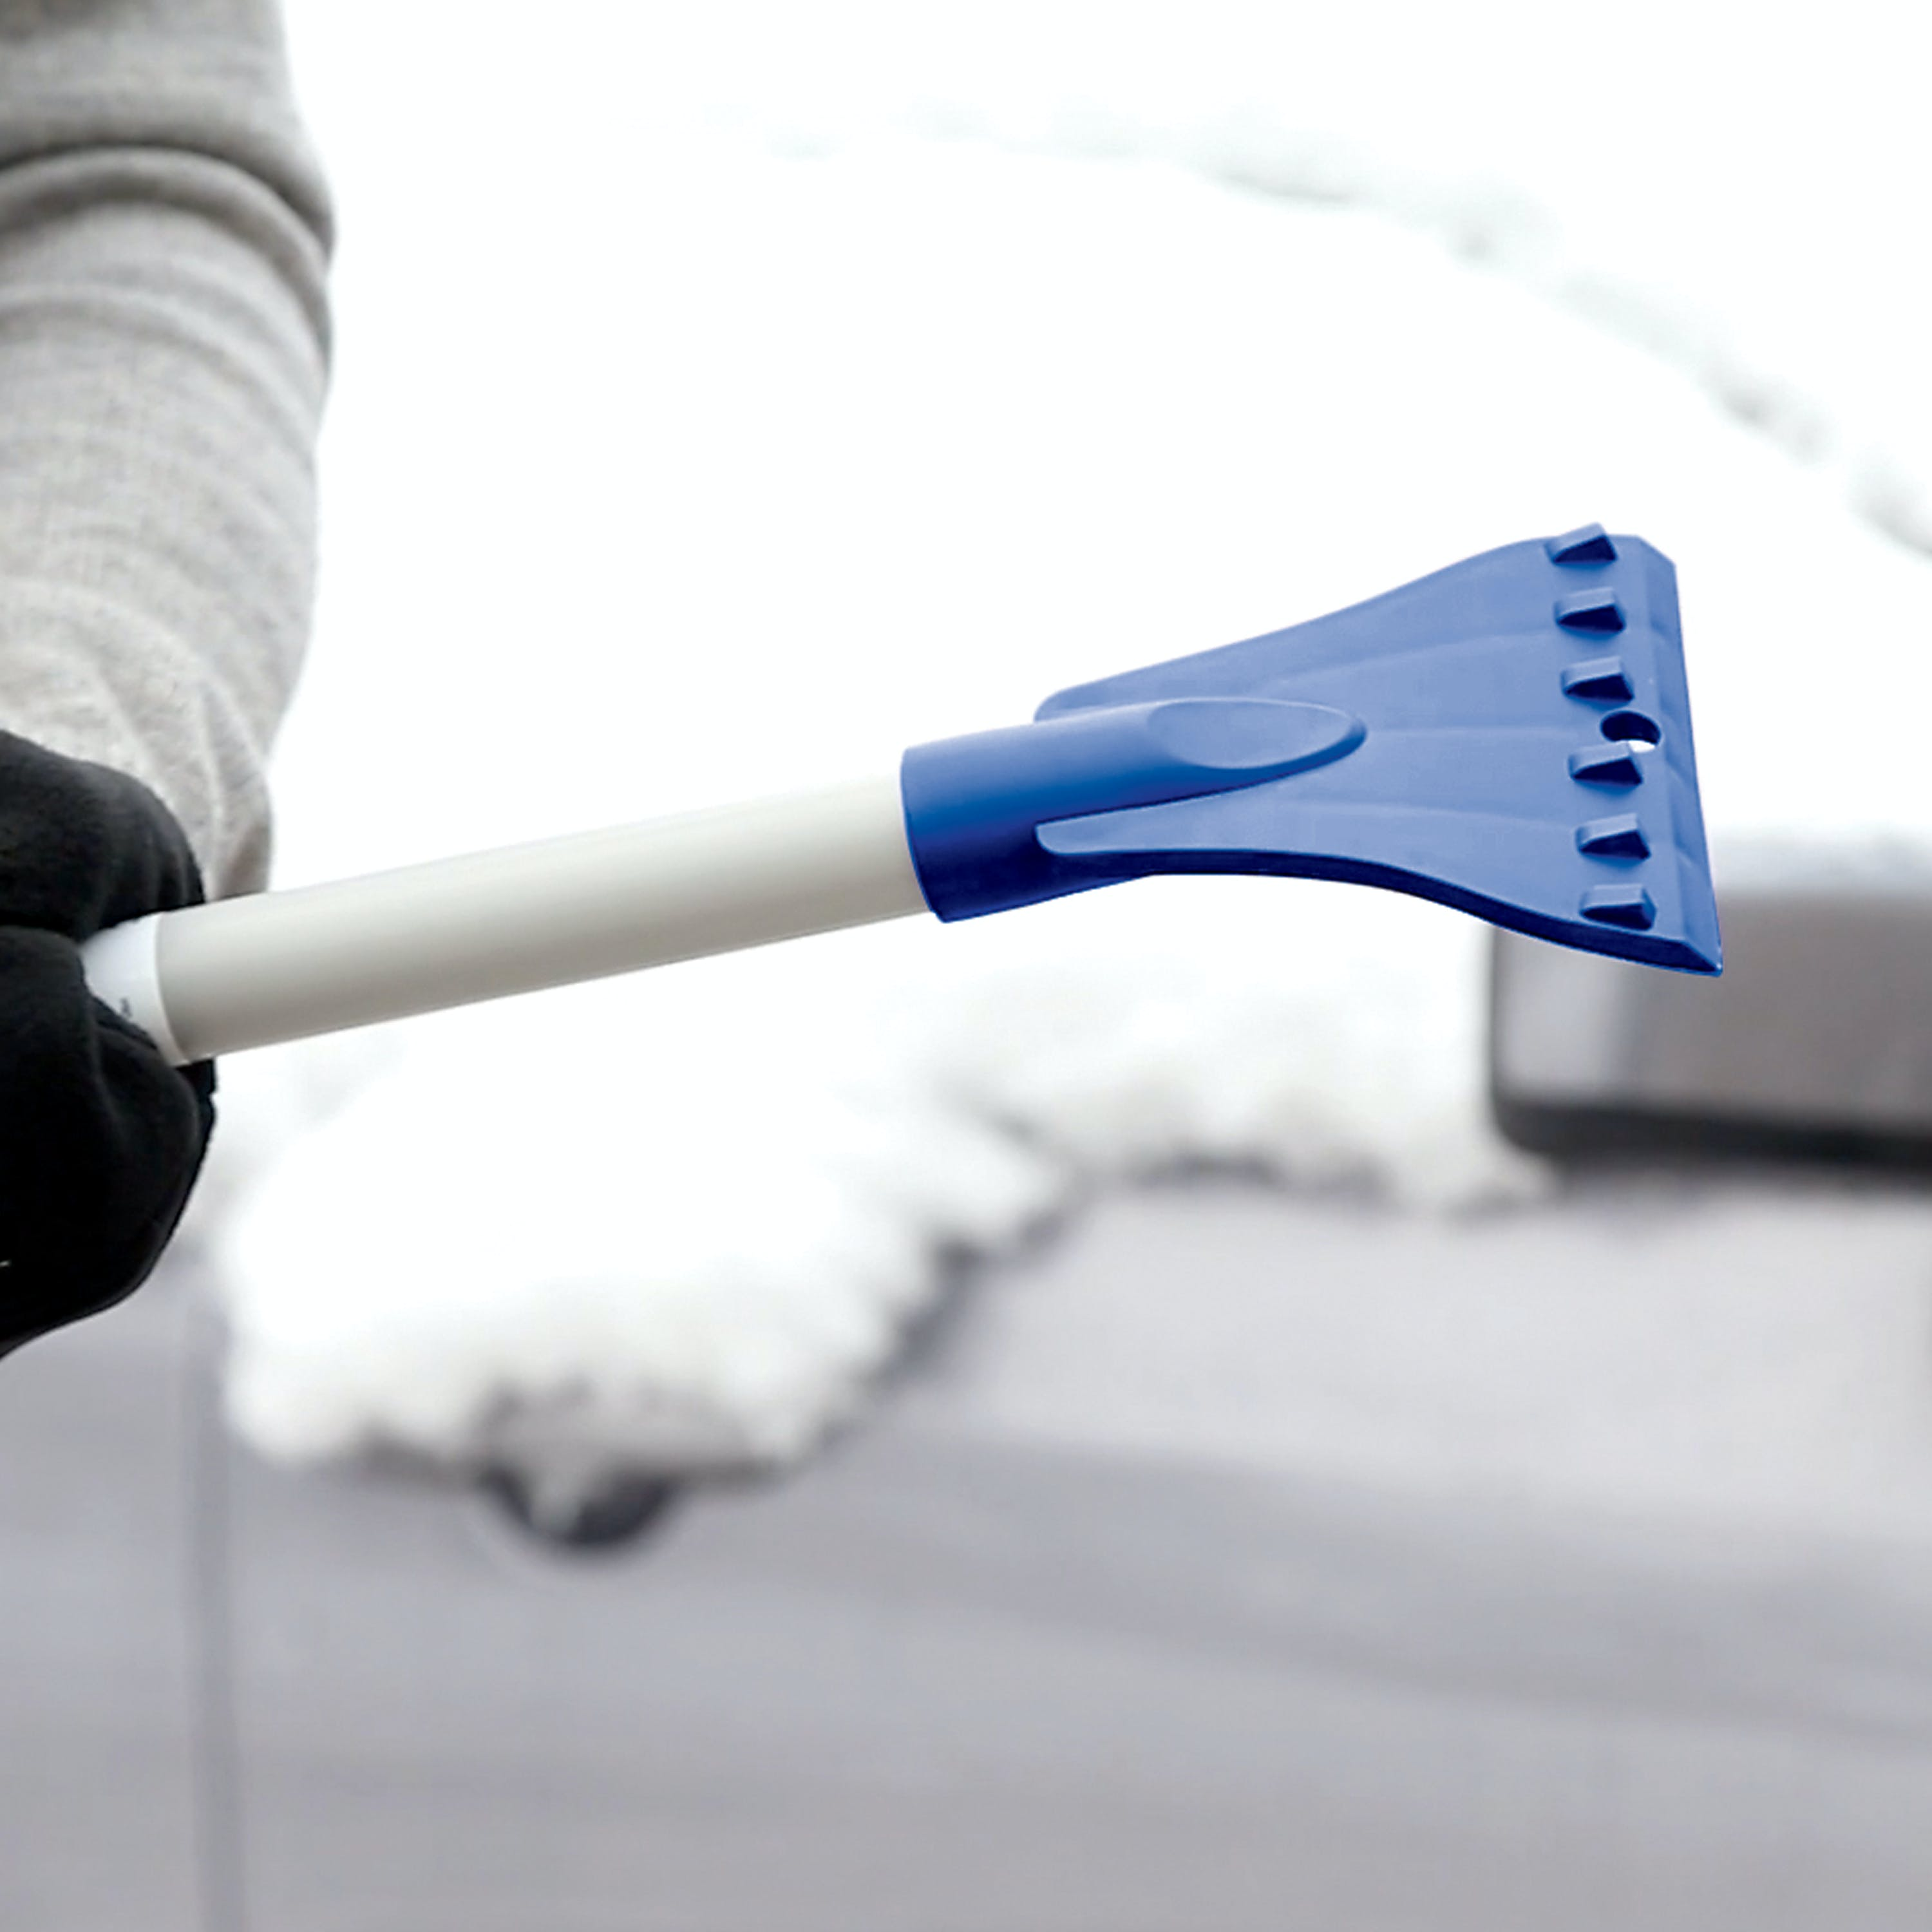 Blue /& Black Extendable Snow Broom with Foam Grip Suitable for Small Car SUPERJARE Telescoping Snow Brush with Integrated Ice Scraper /& Squeegee Head